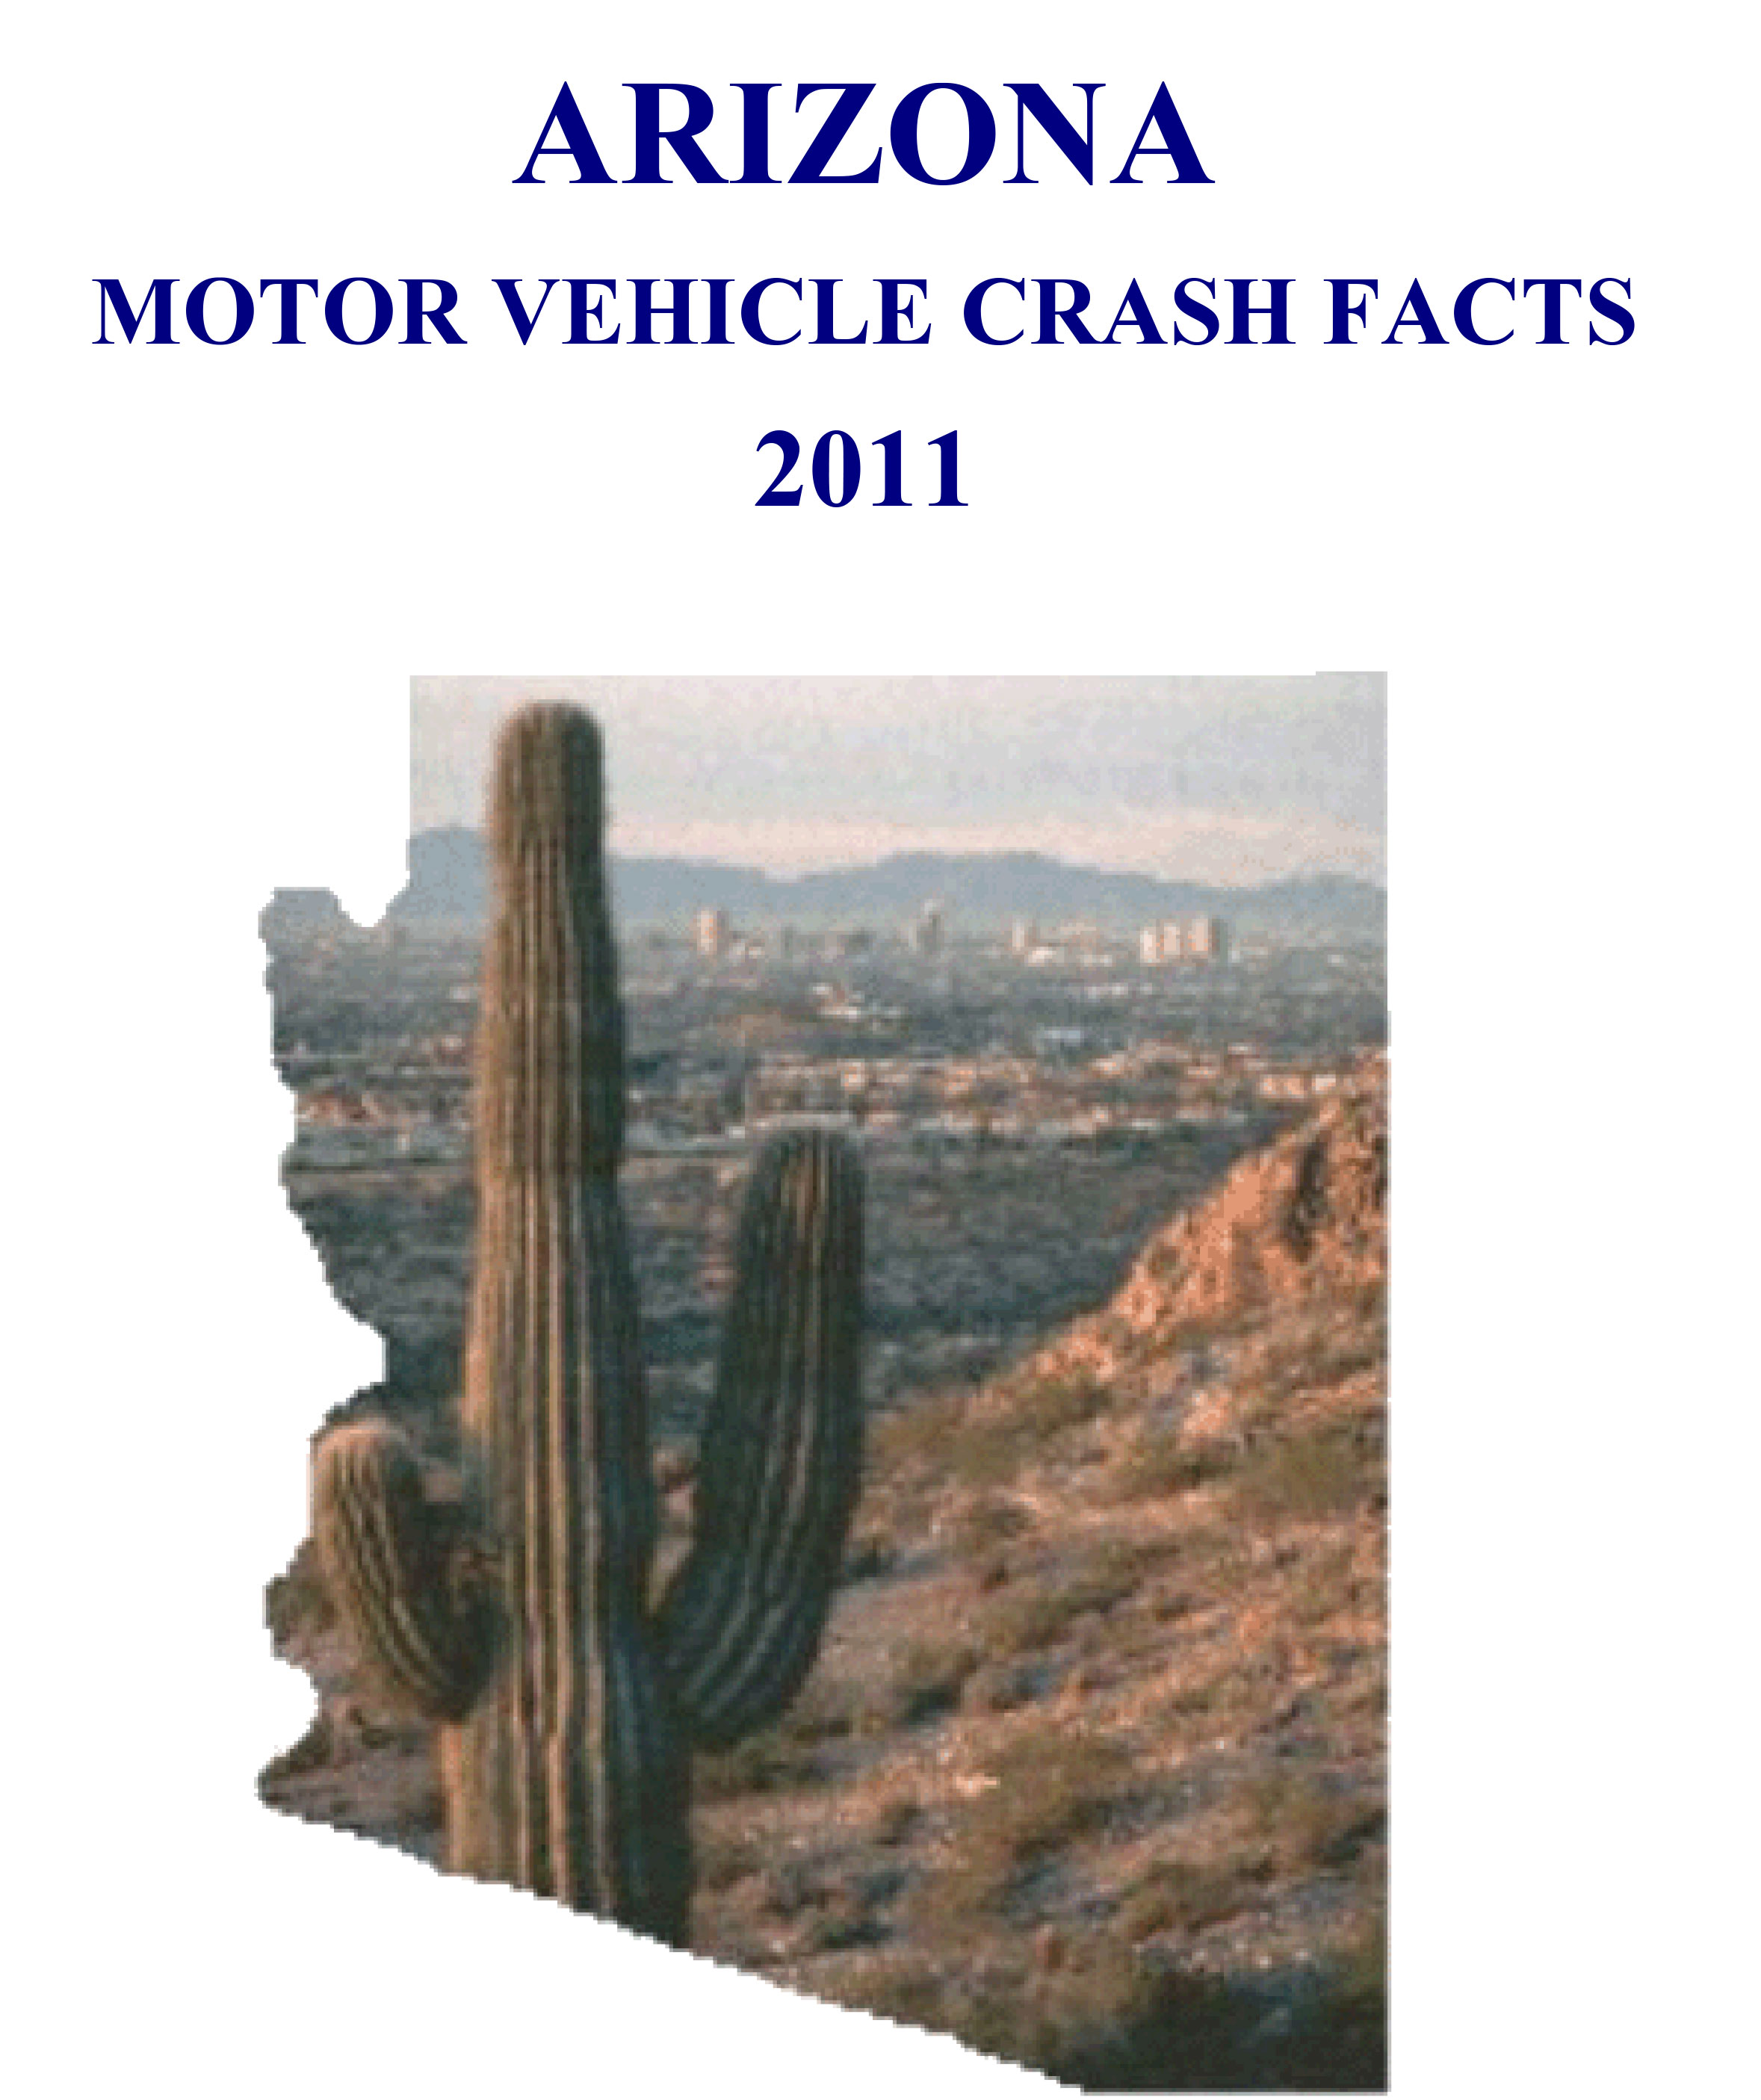 Cover of the 2011 Arizona Motor Vehicle Crash Facts Report